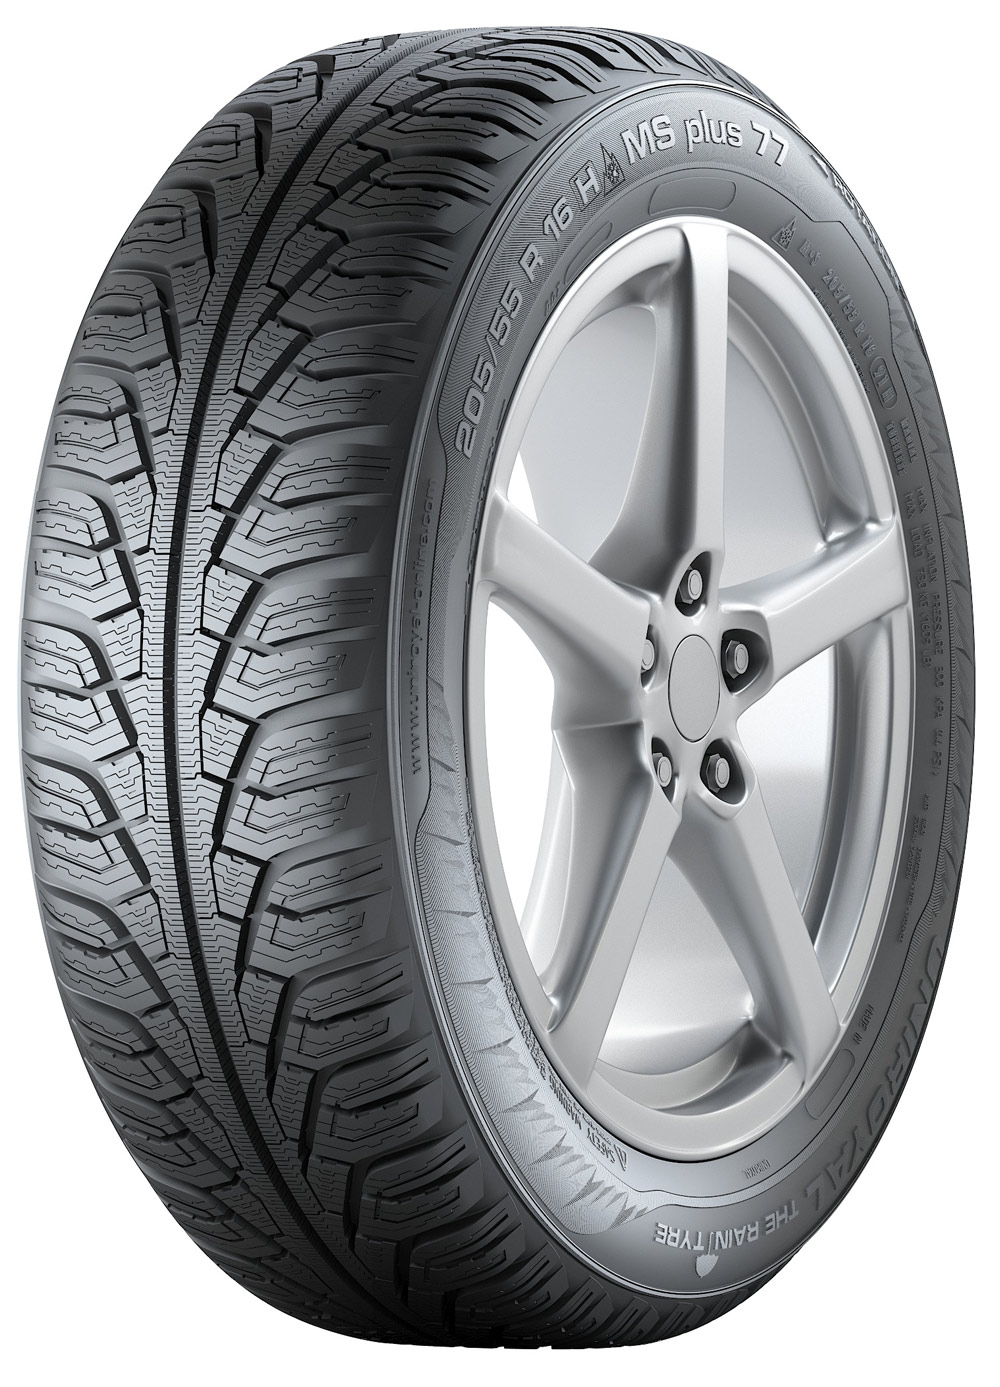 Anvelopa iarna UNIROYAL MS PLUS 77 185/60 R14 82T